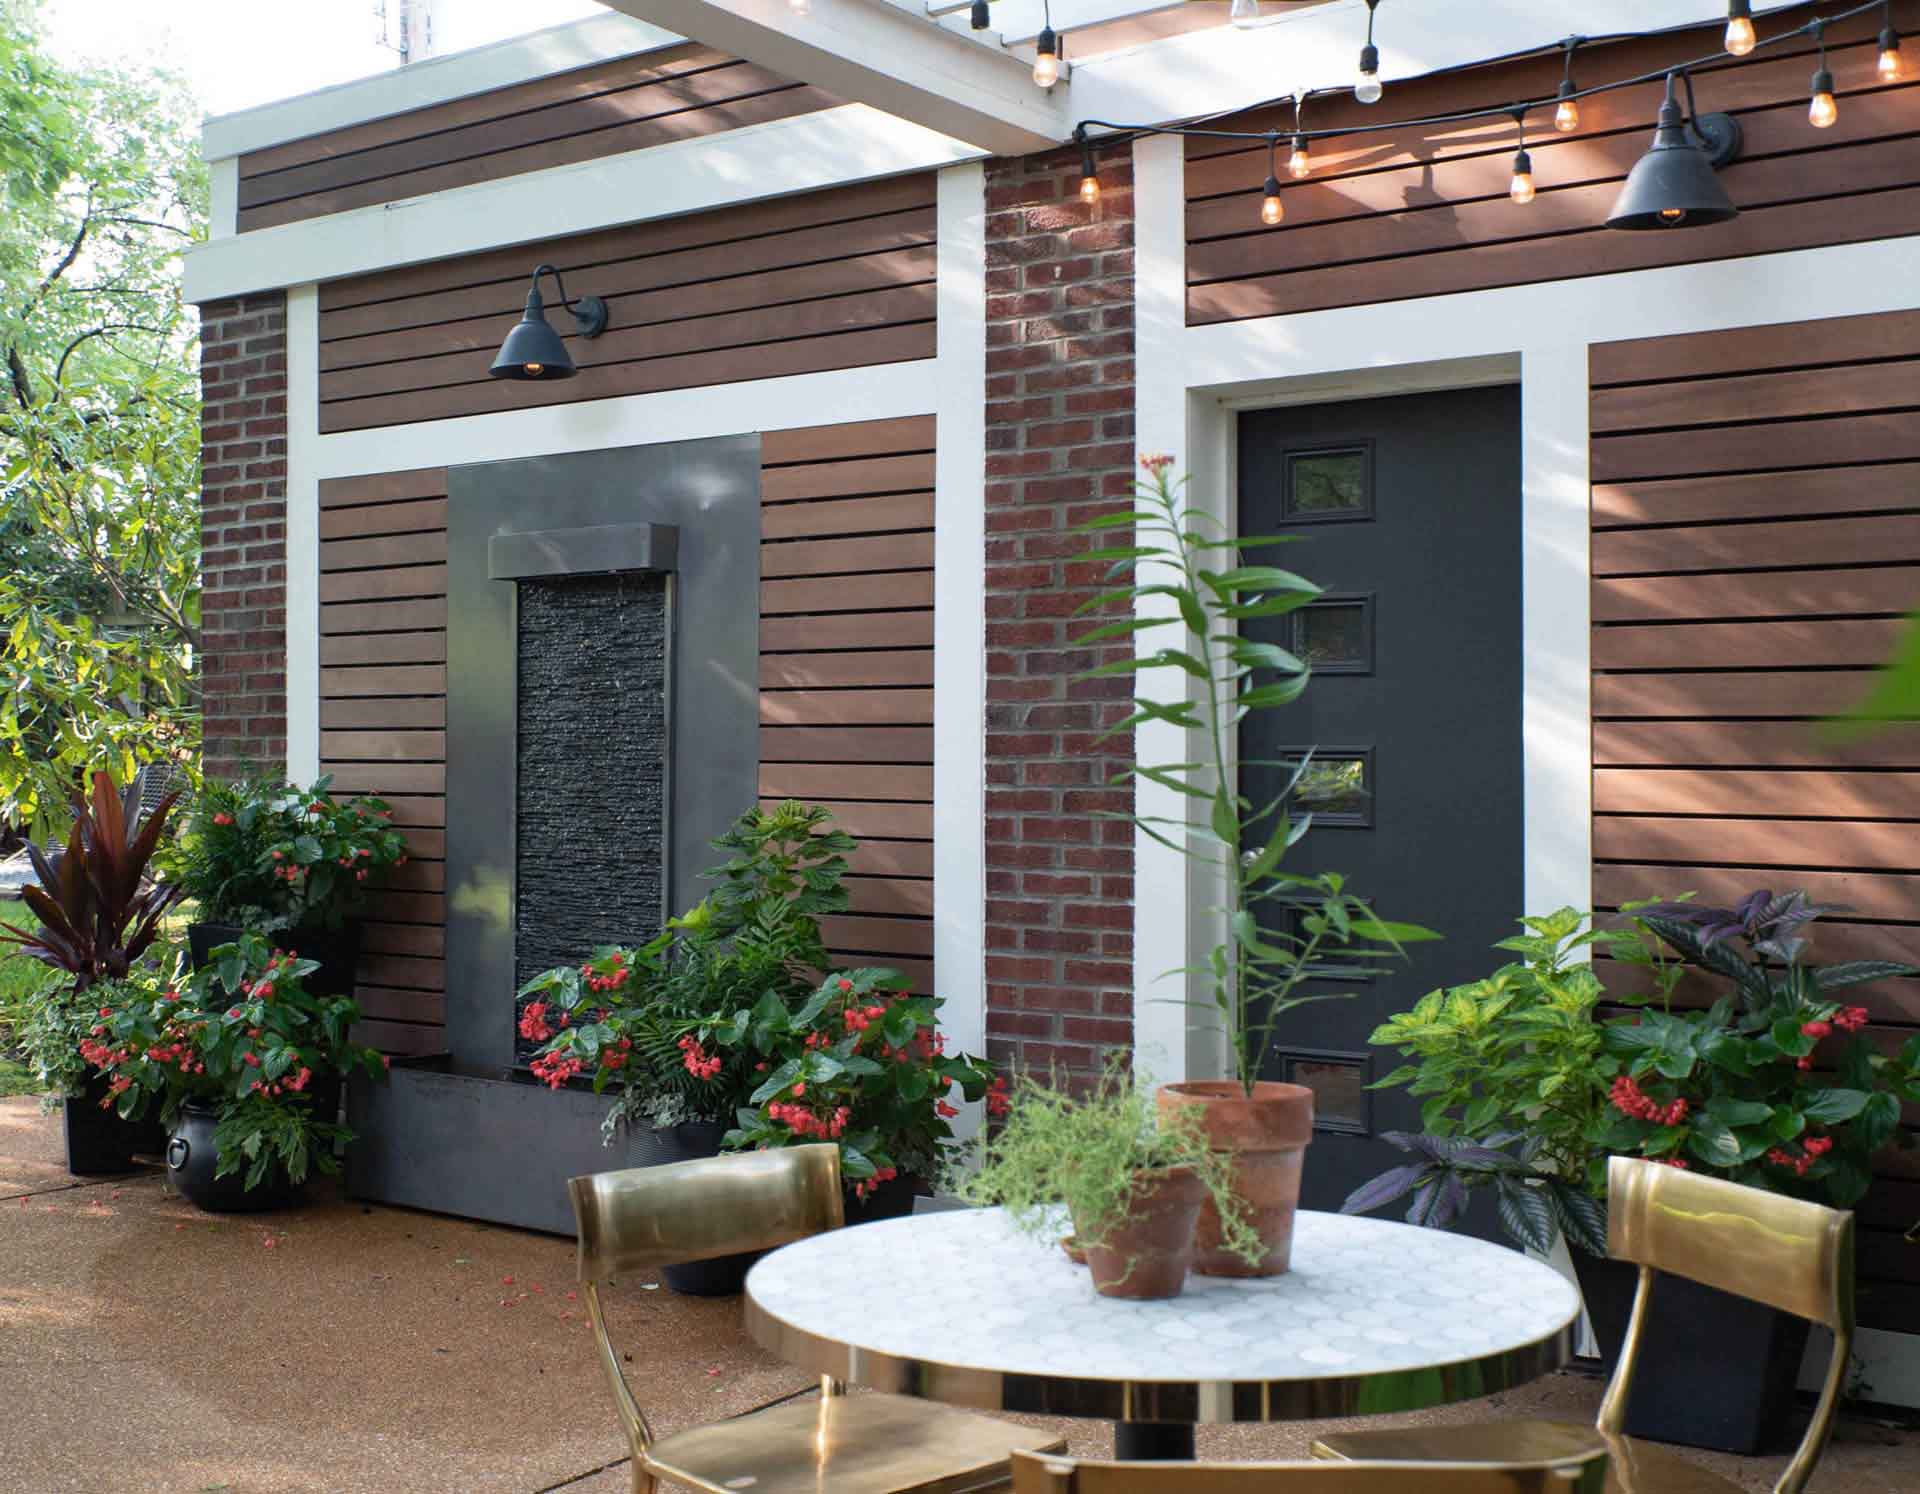 Outdoor Living Remodeling Company   Outdoor Living Design ... on Outdoor Living Company id=98760